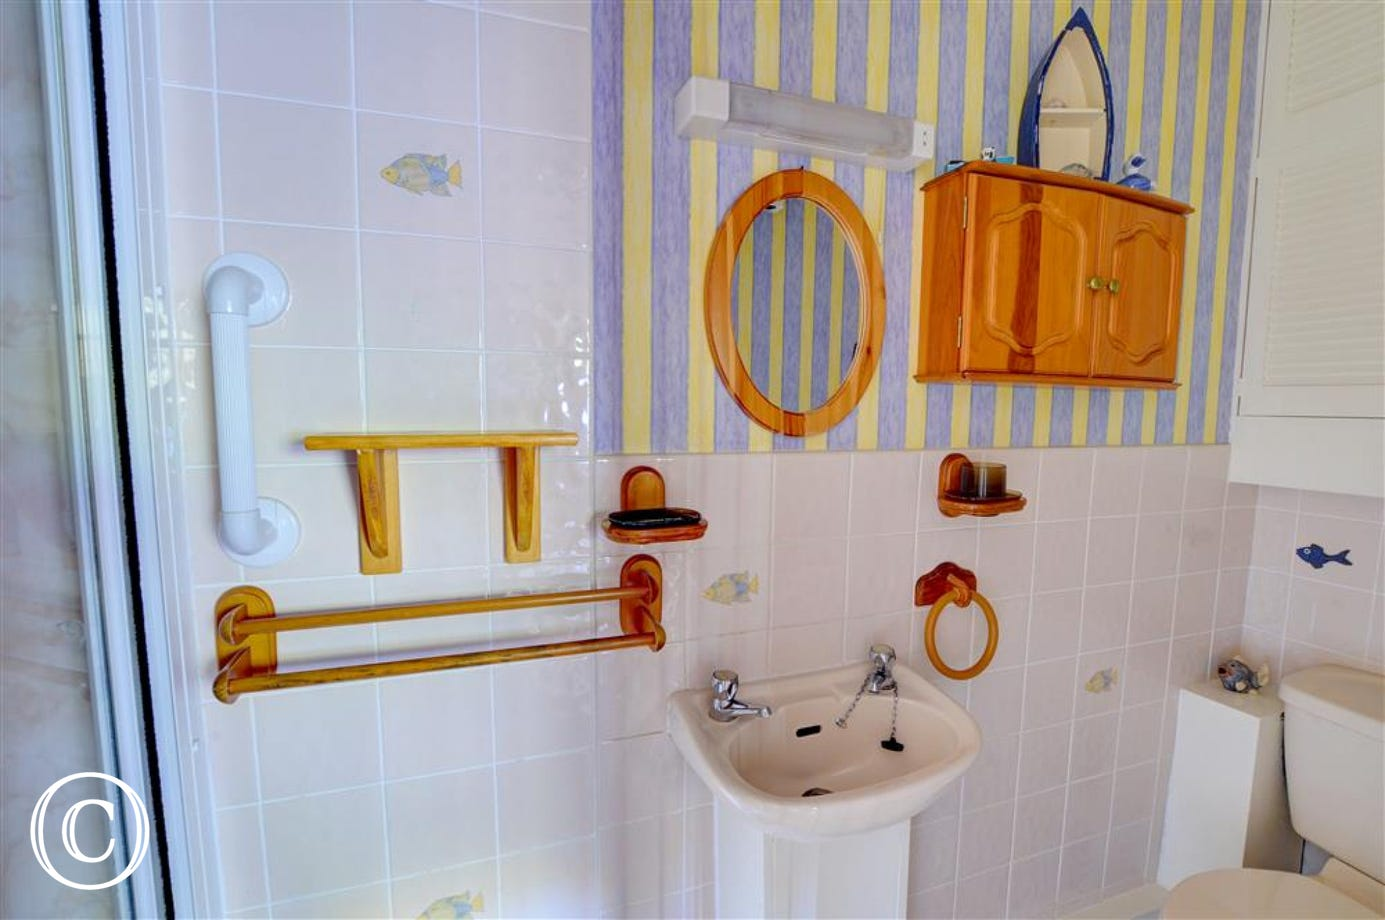 The en suite shower room has shower cubicle ( steps up), white WC and basin, and bright decor